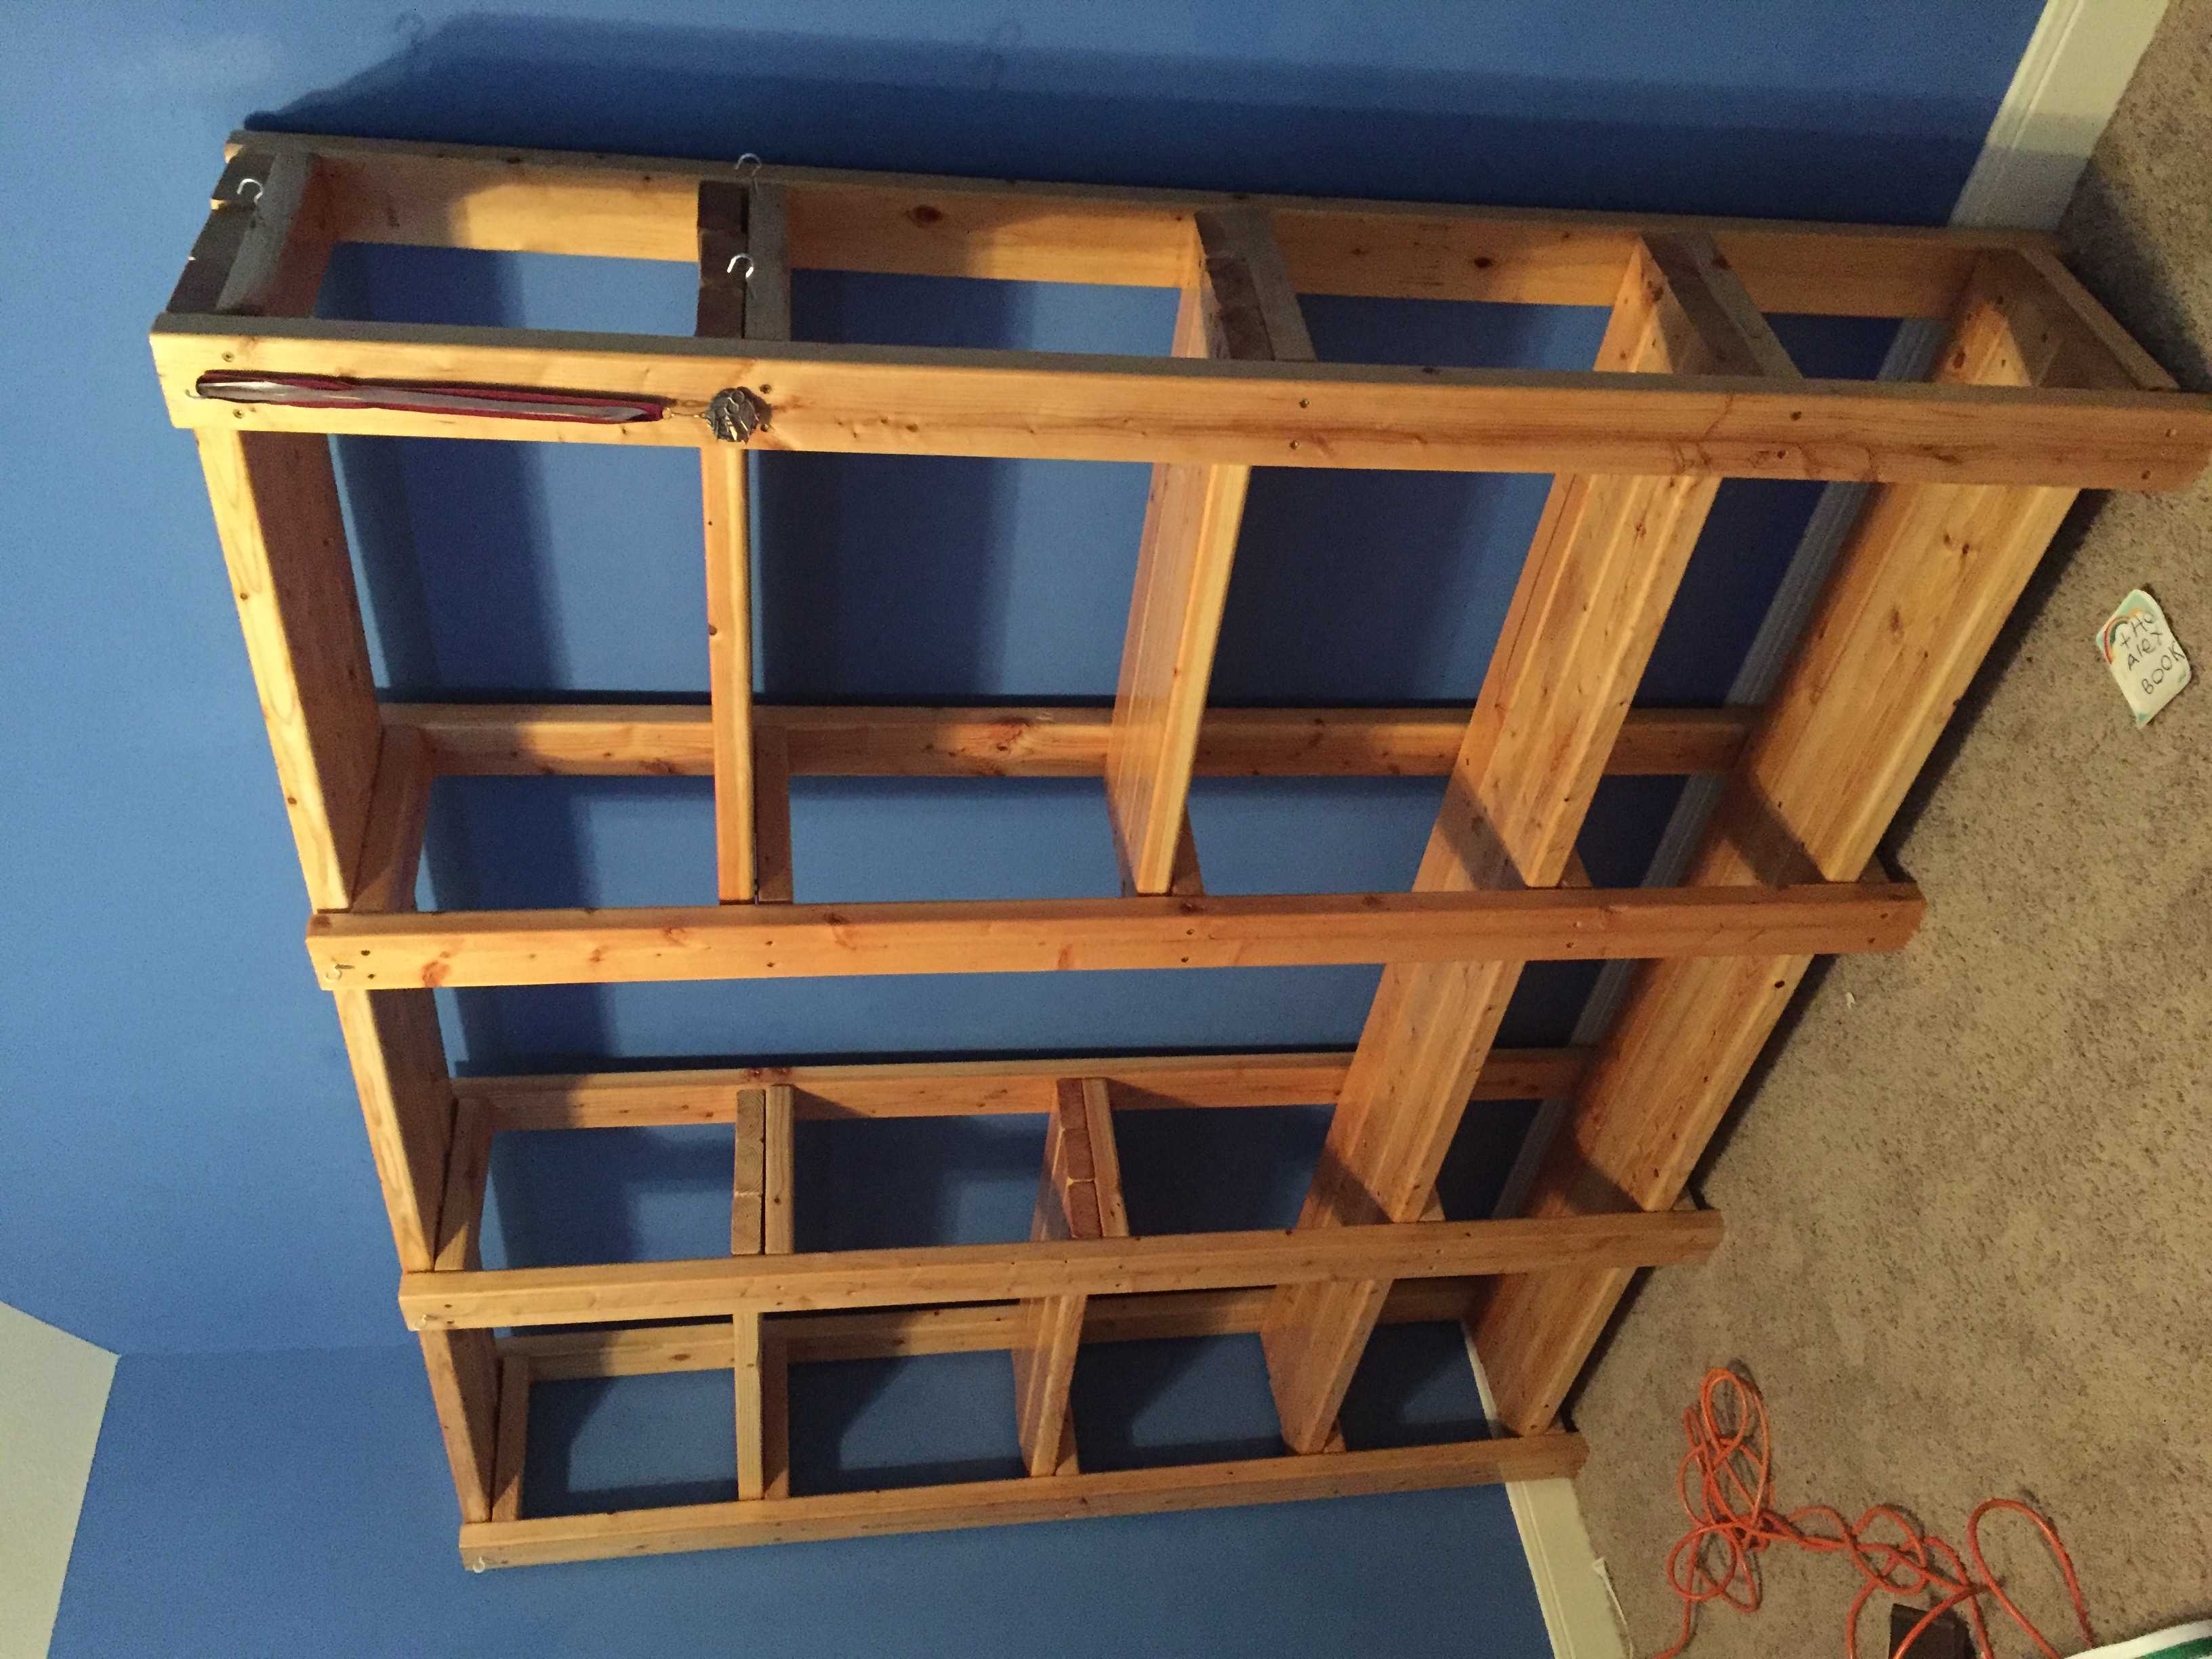 bookshelf center shop tier office home furniture pflugerville stacked bench